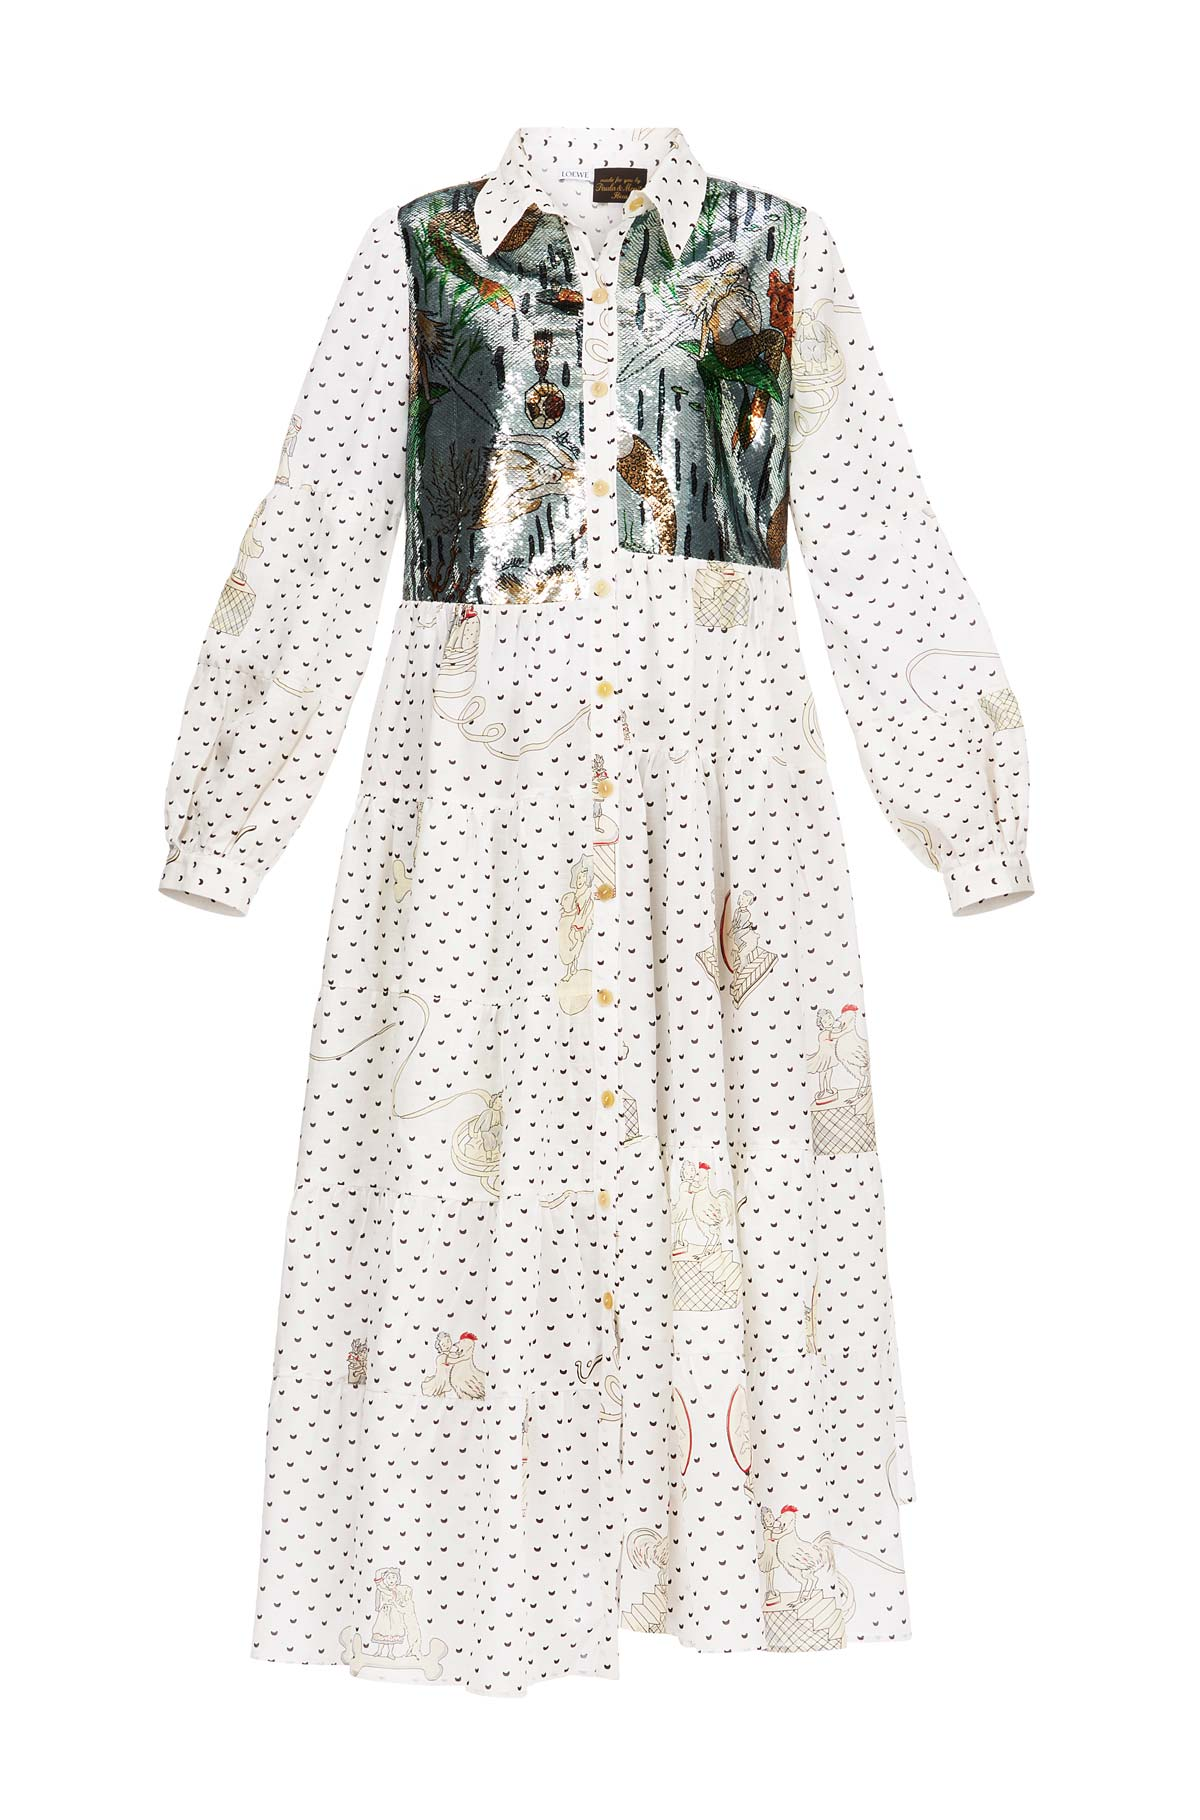 LOEWE Dress Paula Sequins White/Multicolor front